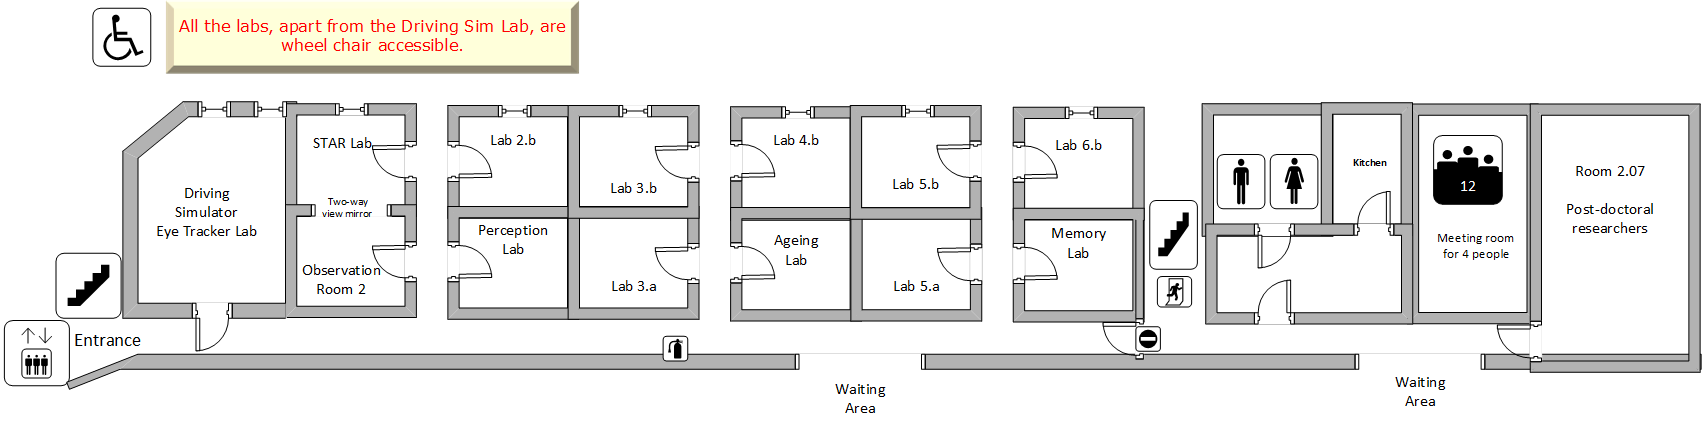 labs layout